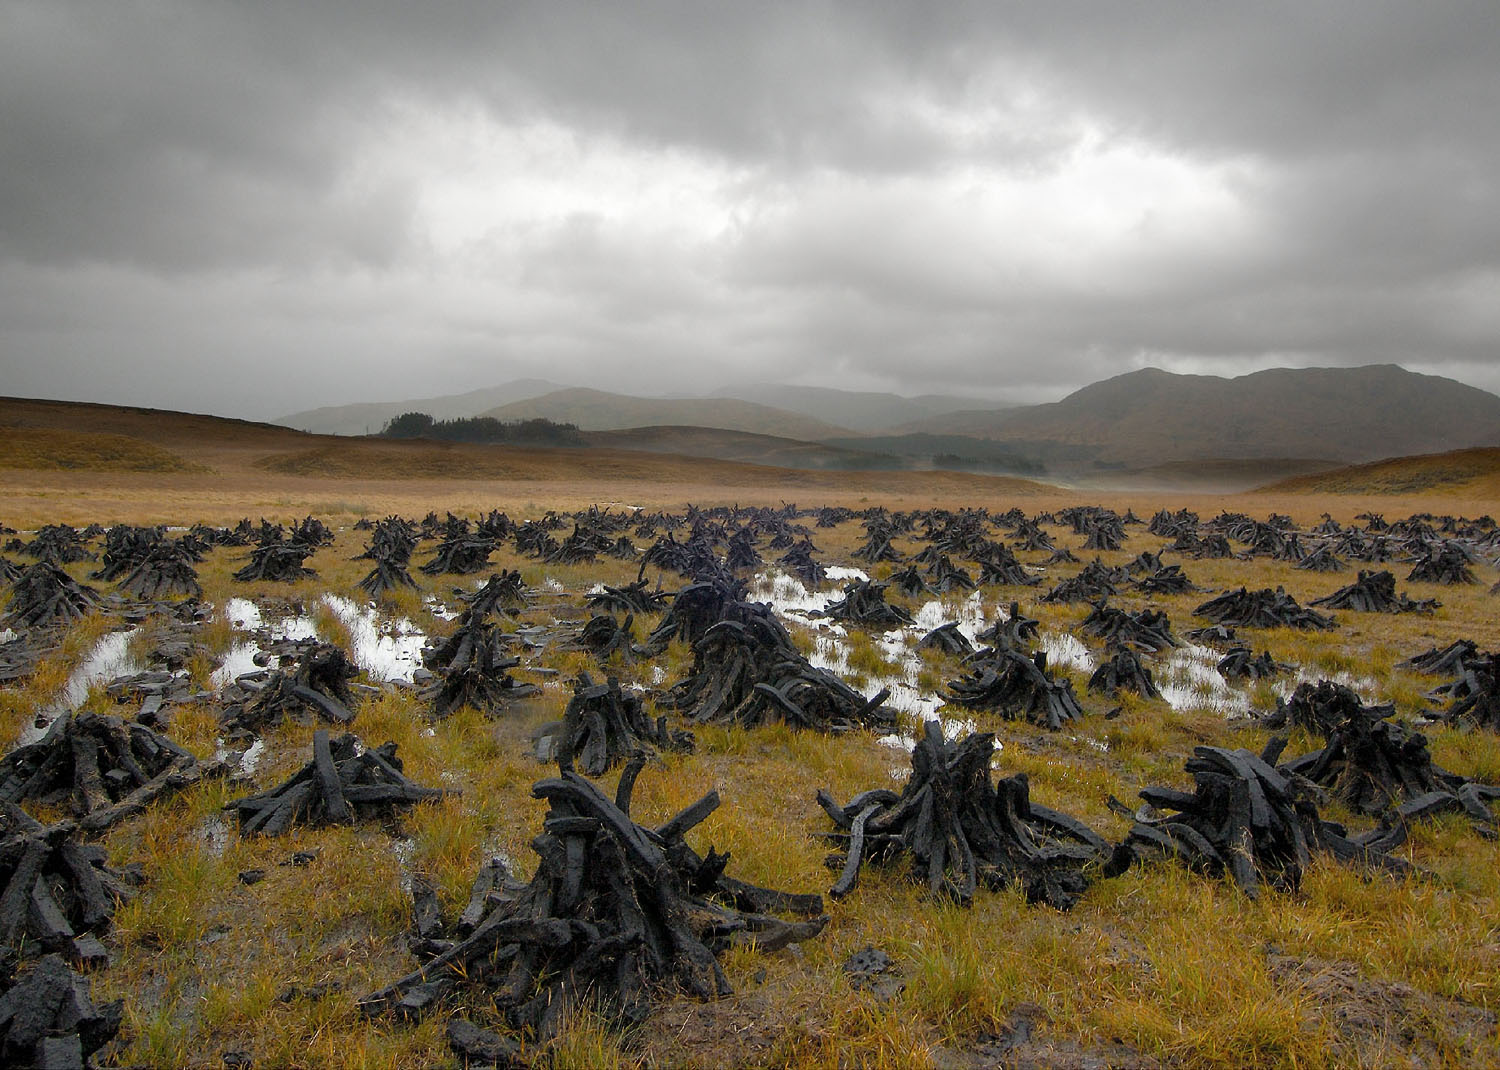 Barry Andersen, Peat, Storm, Connemara, Ireland, 2004. Digital Photograph, 10 x 12½ to 12 x 18 inches. Courtesy of the artist